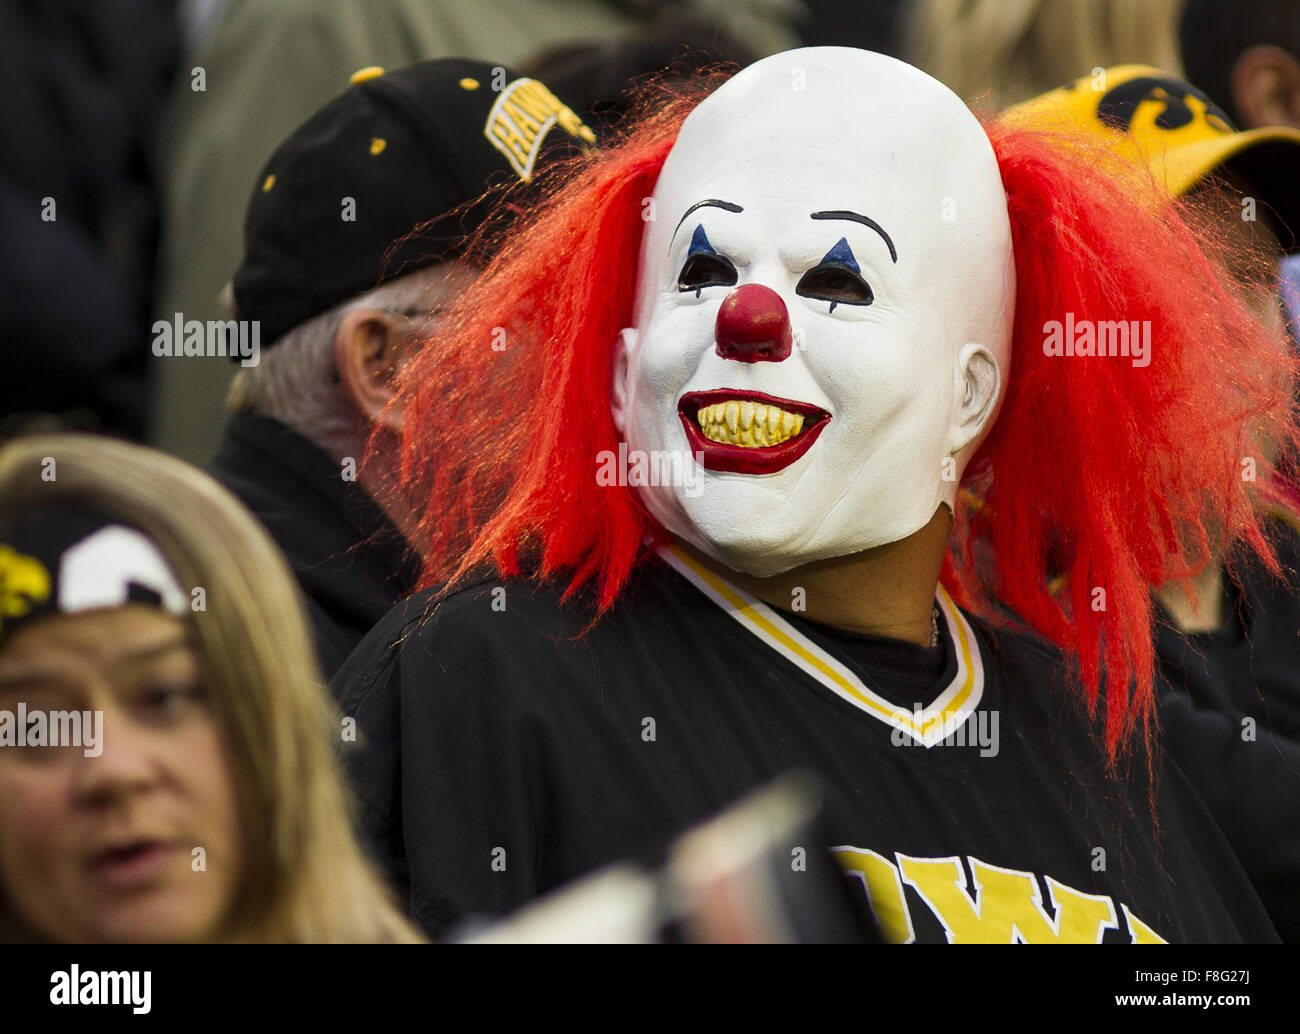 Iowa City, Iowa, USA. 31st Oct, 2015. A fan dressed as Pennywise the clown from the movie ''It'' cheers on the Hawkeyes Stock Photo